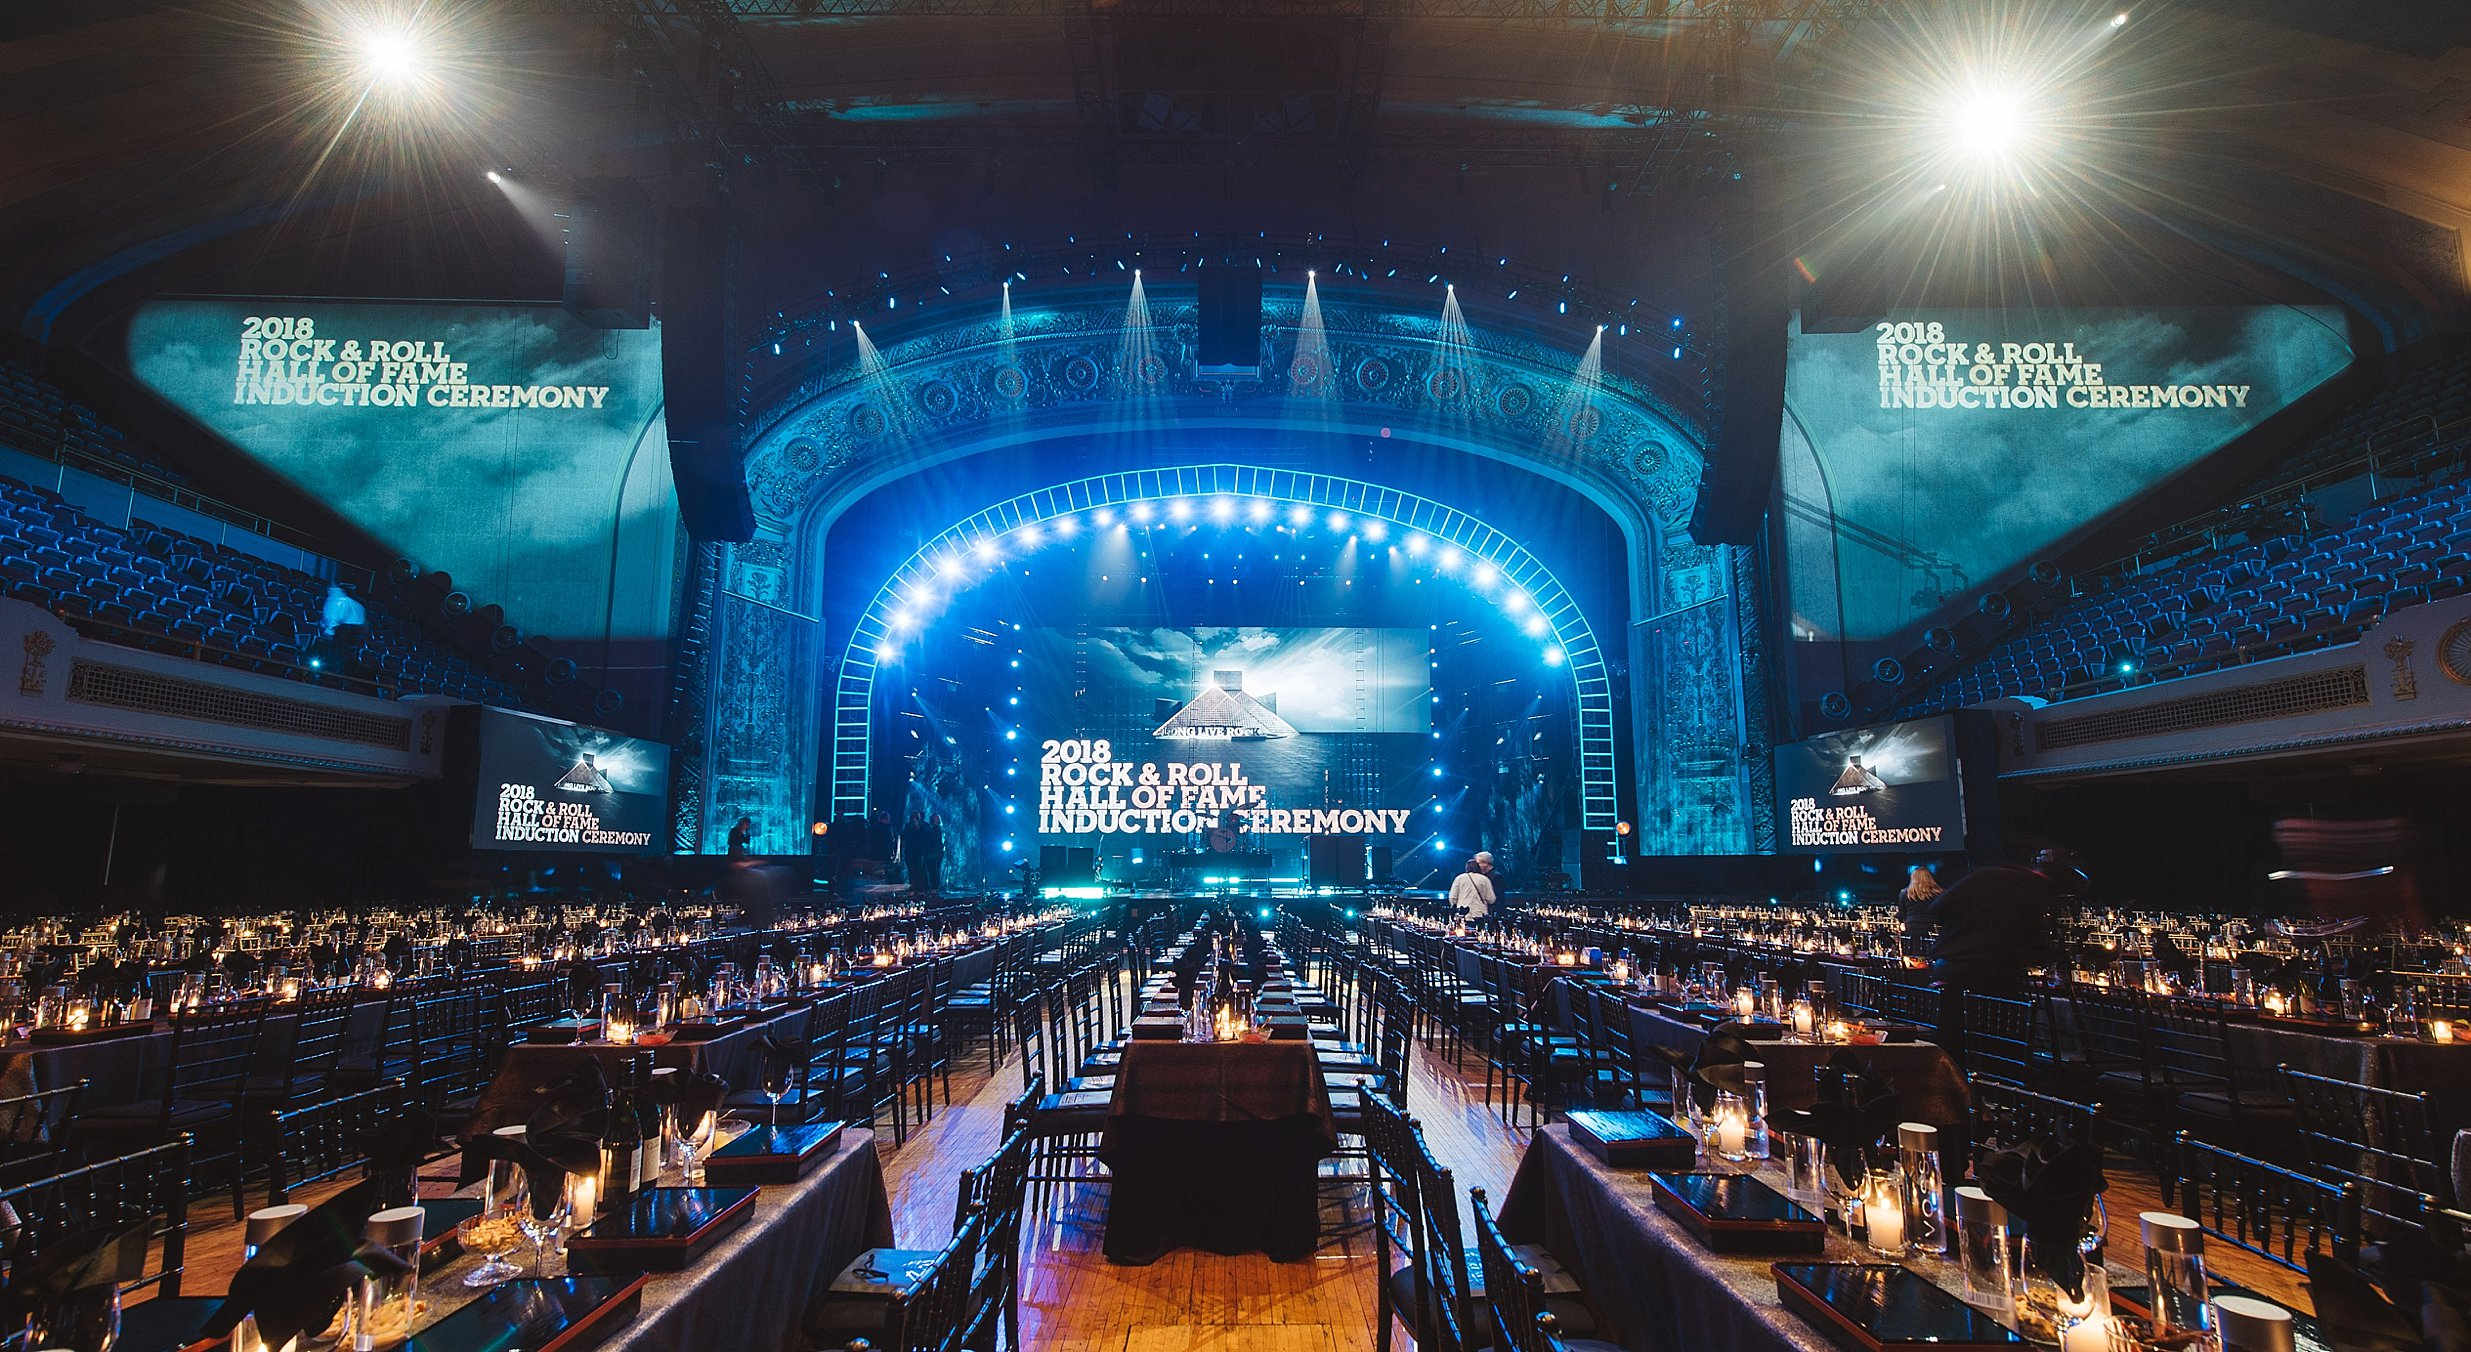 2018 Rock Hall of Fame Induction Ceremony_0016.jpg